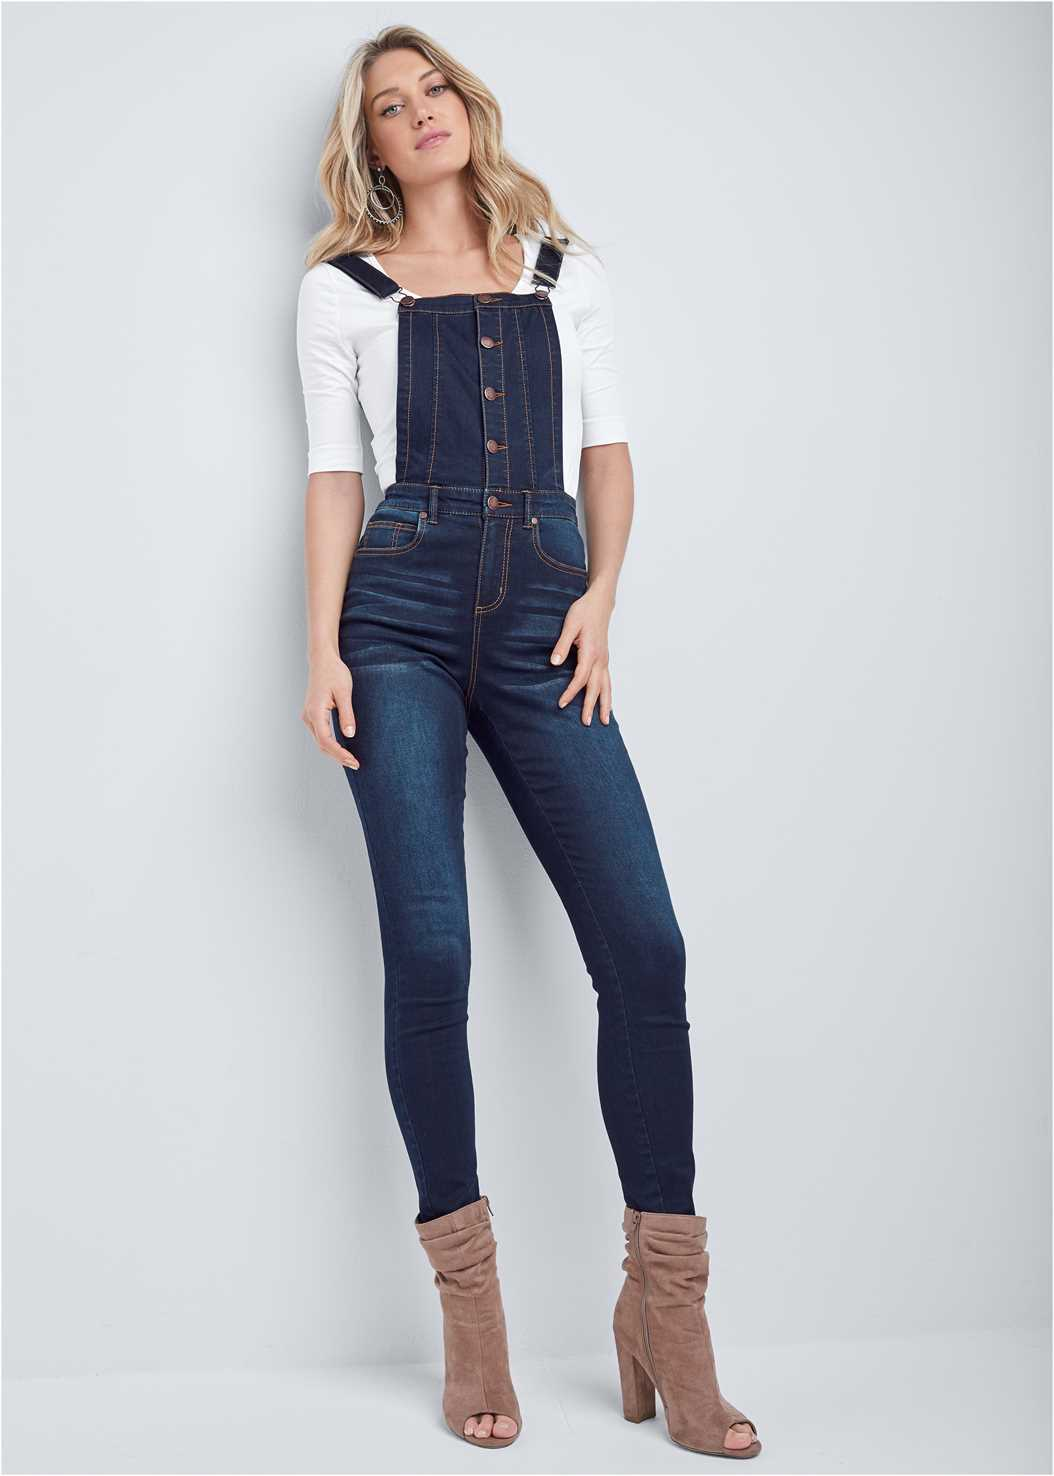 Denim Overalls,Long And Lean V-Neck Tee